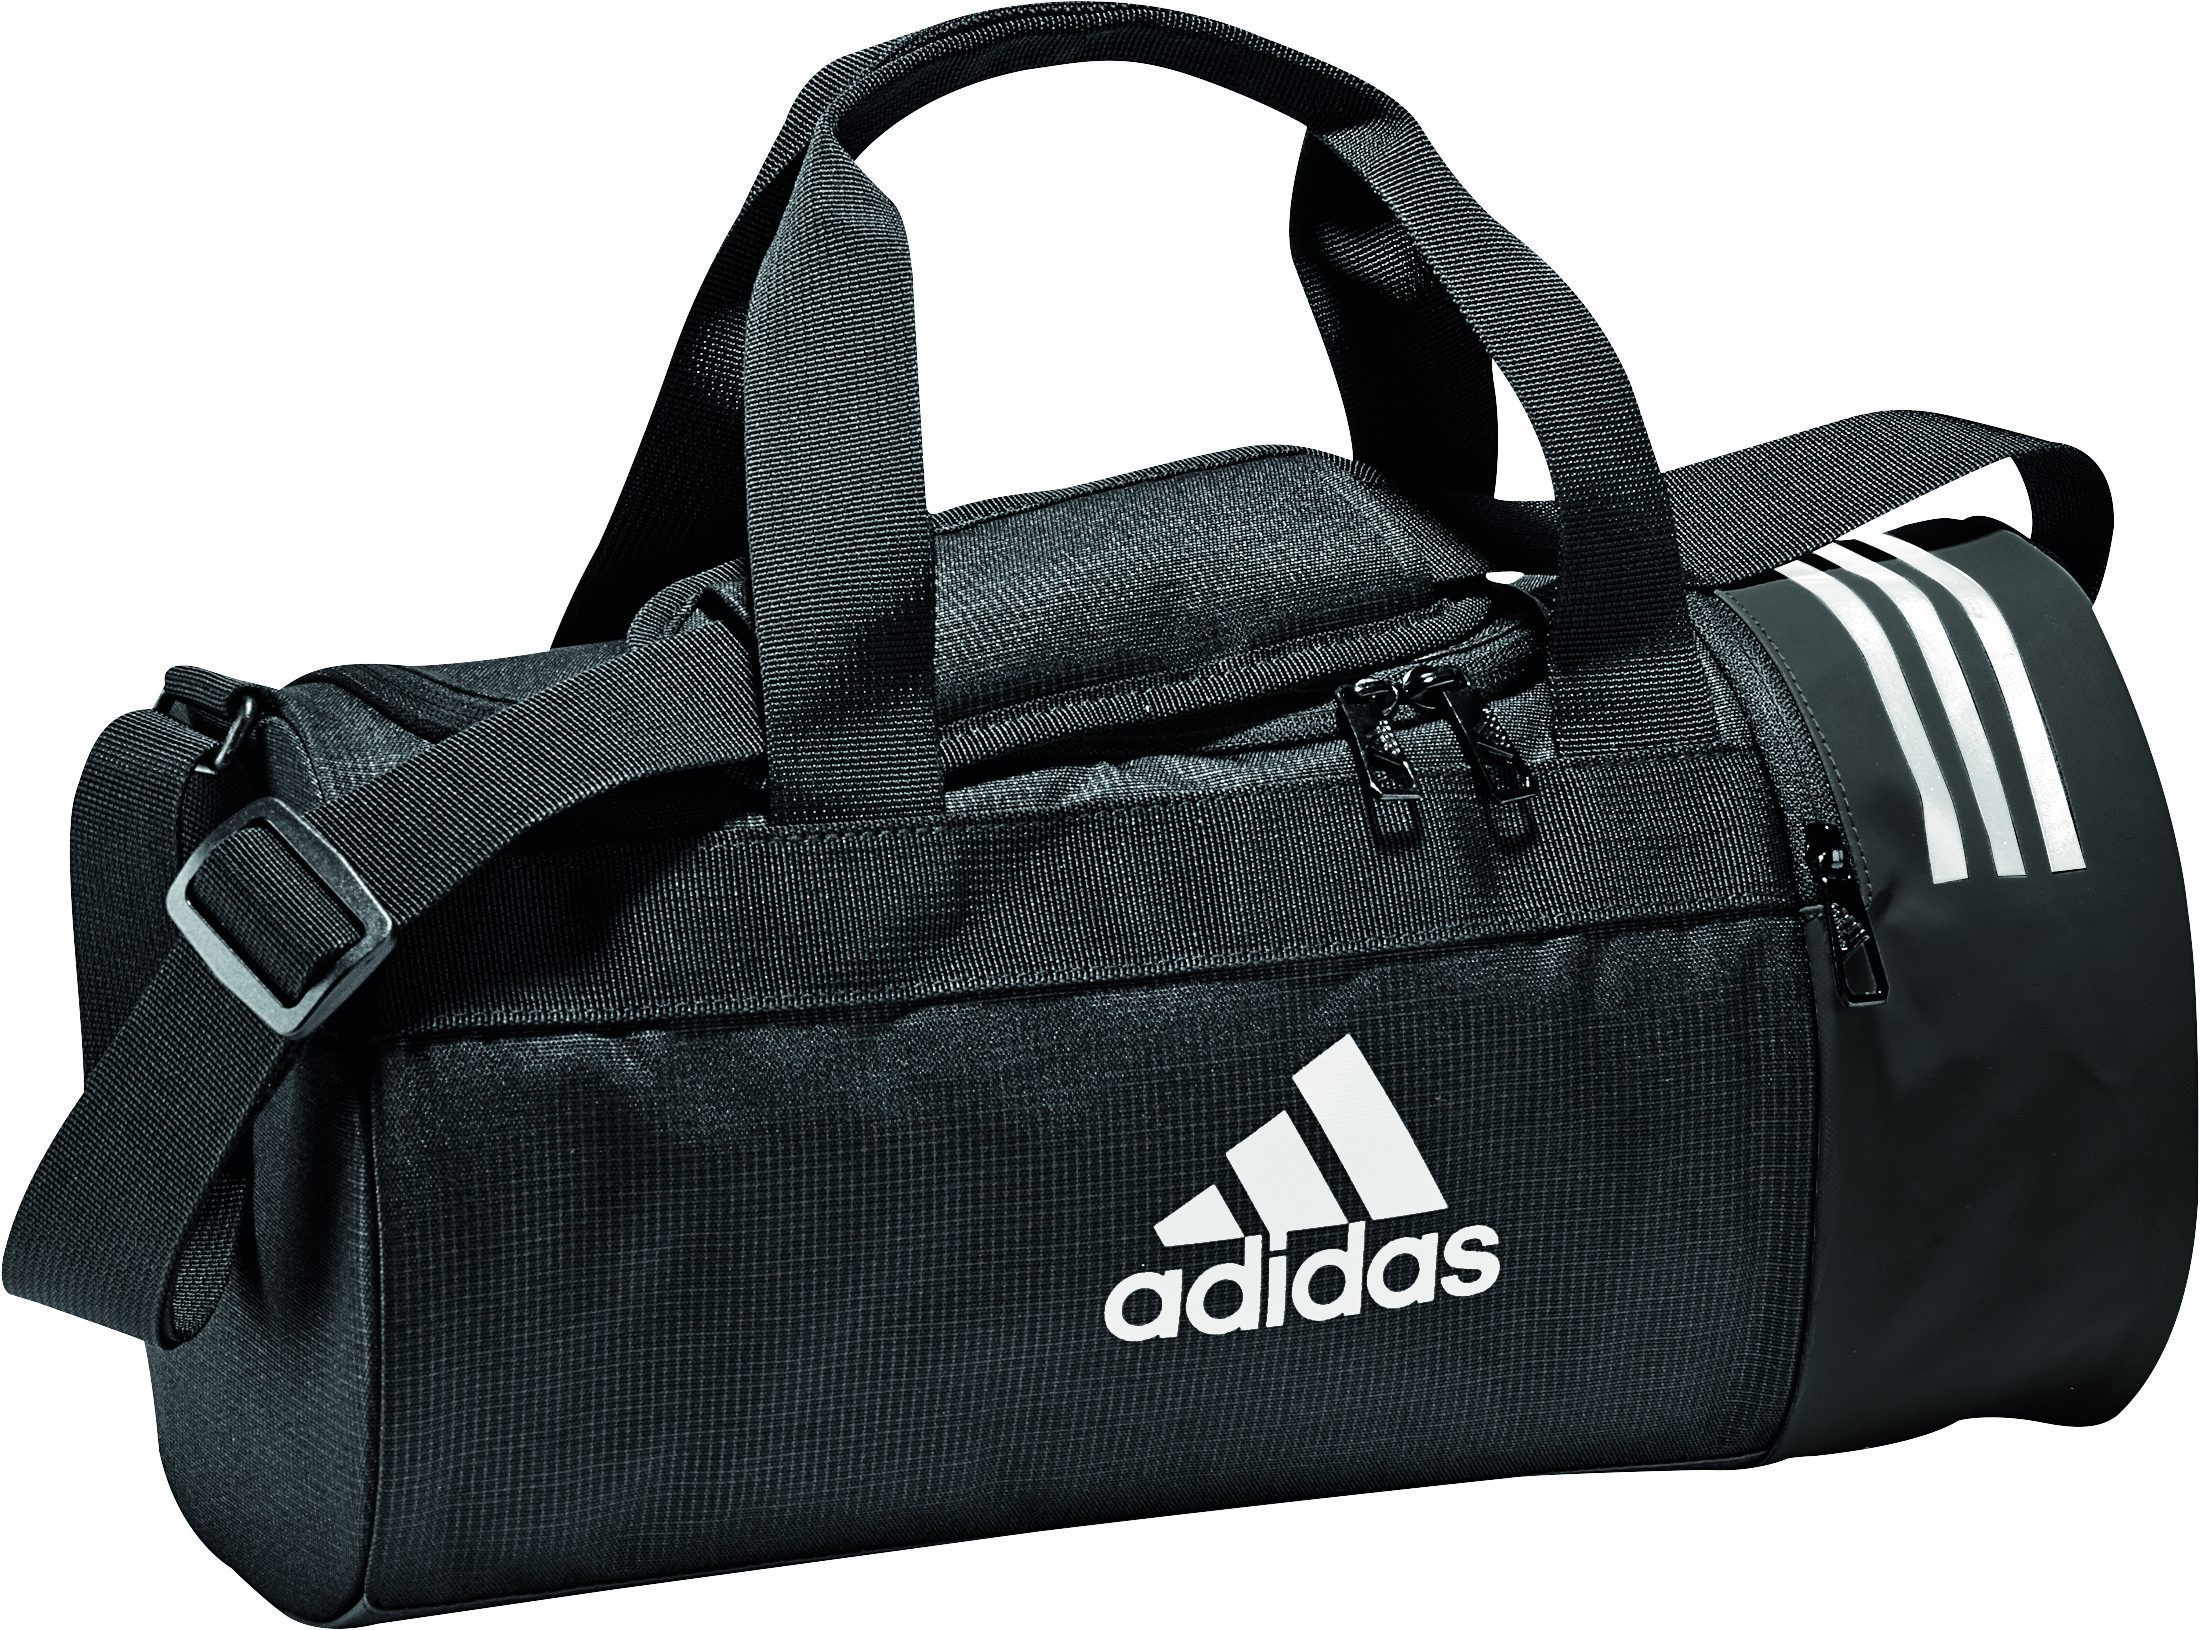 Image of Adidas Convertible 3-Stripes Duffel Bag XS Grösse Einmalige Grösse Damen